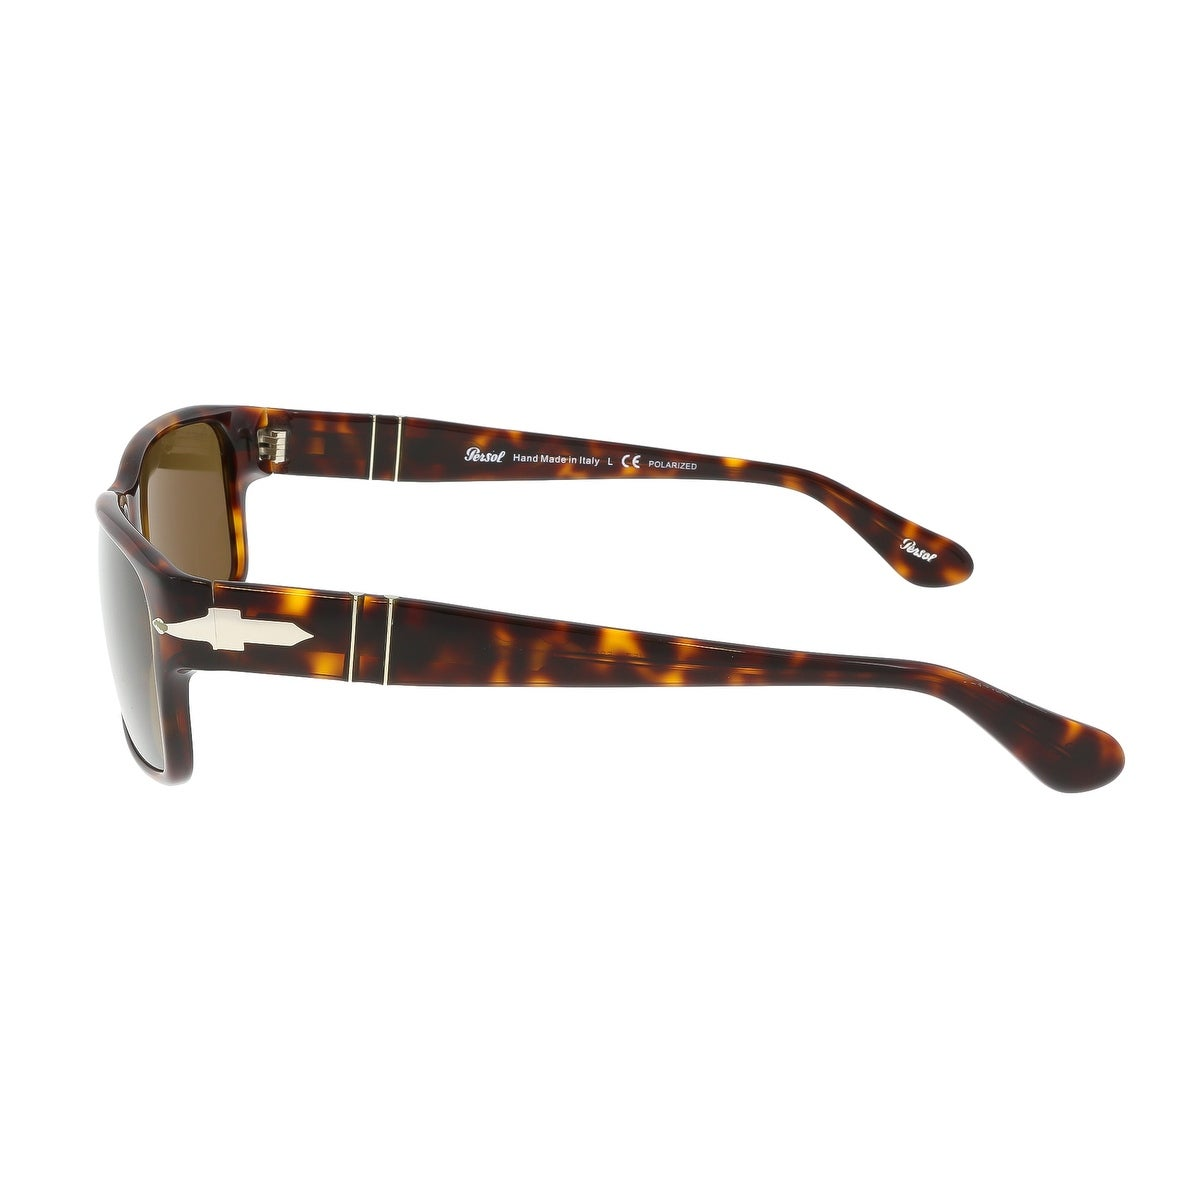 729140406b Shop Persol PO2803S 24 57 Havana Rectangle Sunglasses - 58-16-140 - Free  Shipping Today - Overstock - 17646164